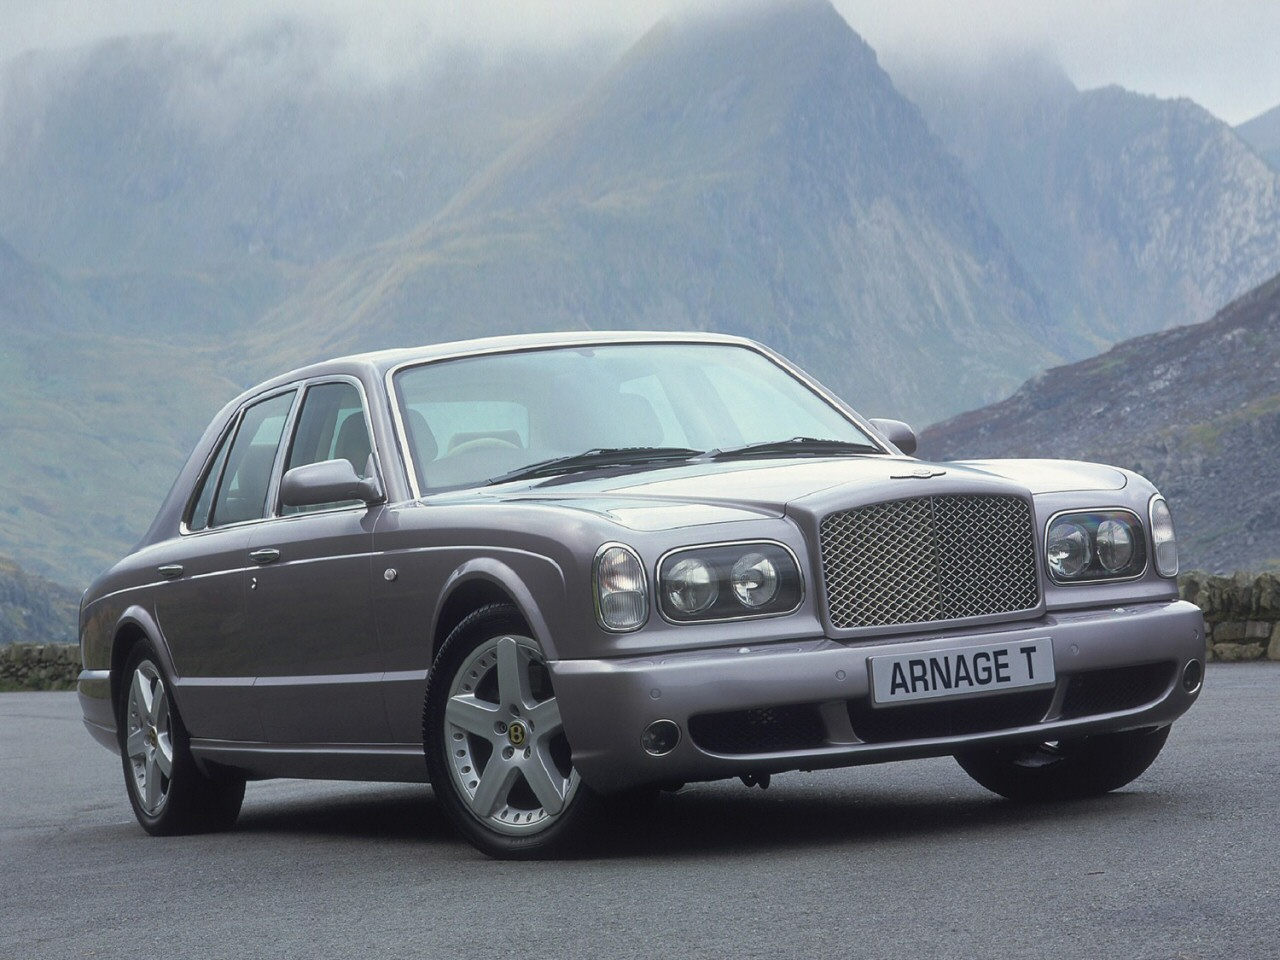 Bentley Arnage T 2002 Bentley Arnage T 2002 Photo 02 – Car in ...